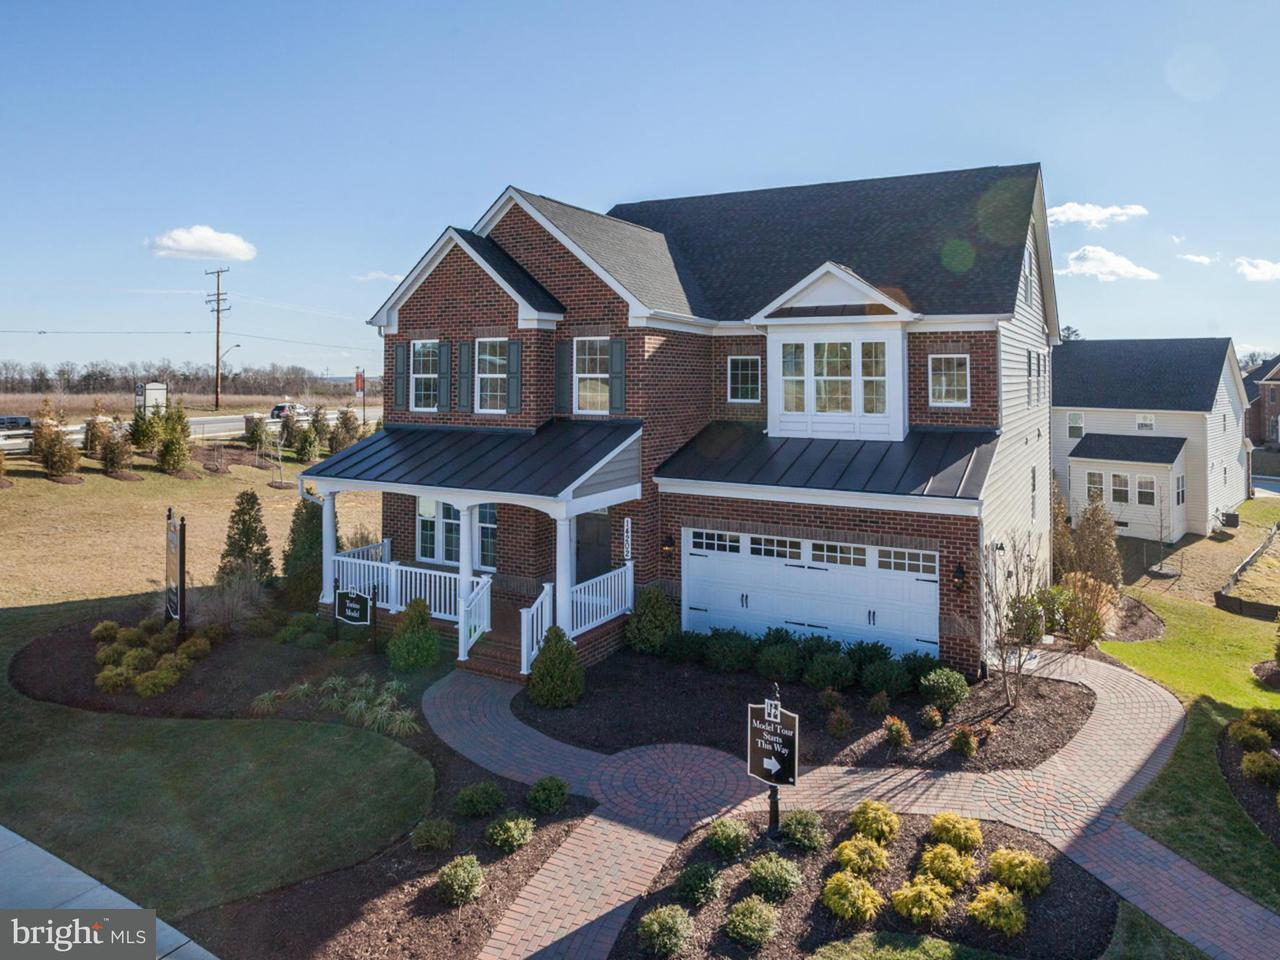 Single Family Home for Sale at 4332 Camley Way 4332 Camley Way Burtonsville, Maryland 20866 United States